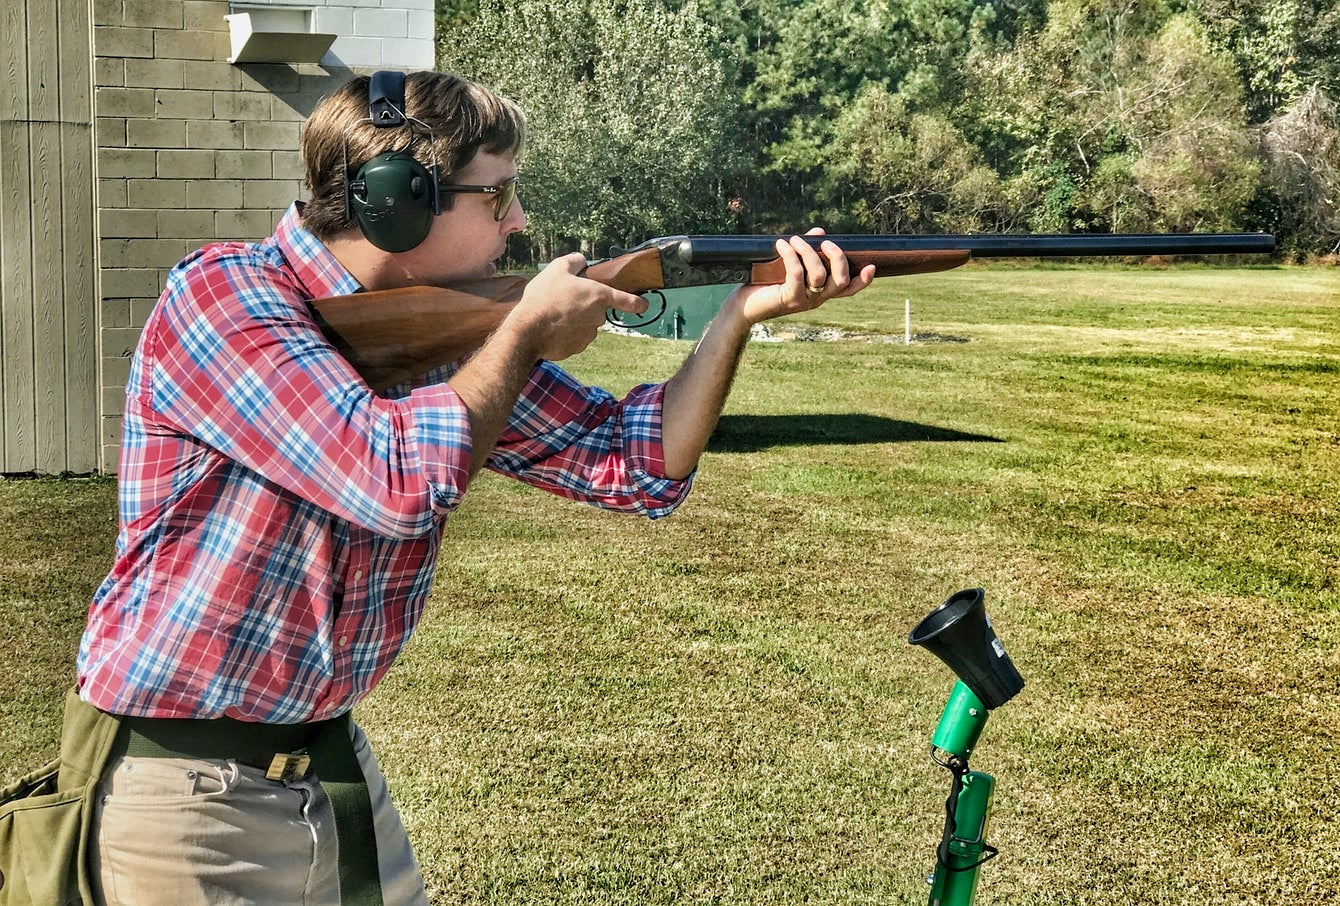 A shooter wearing ear protection at a clays range readies to shoot.